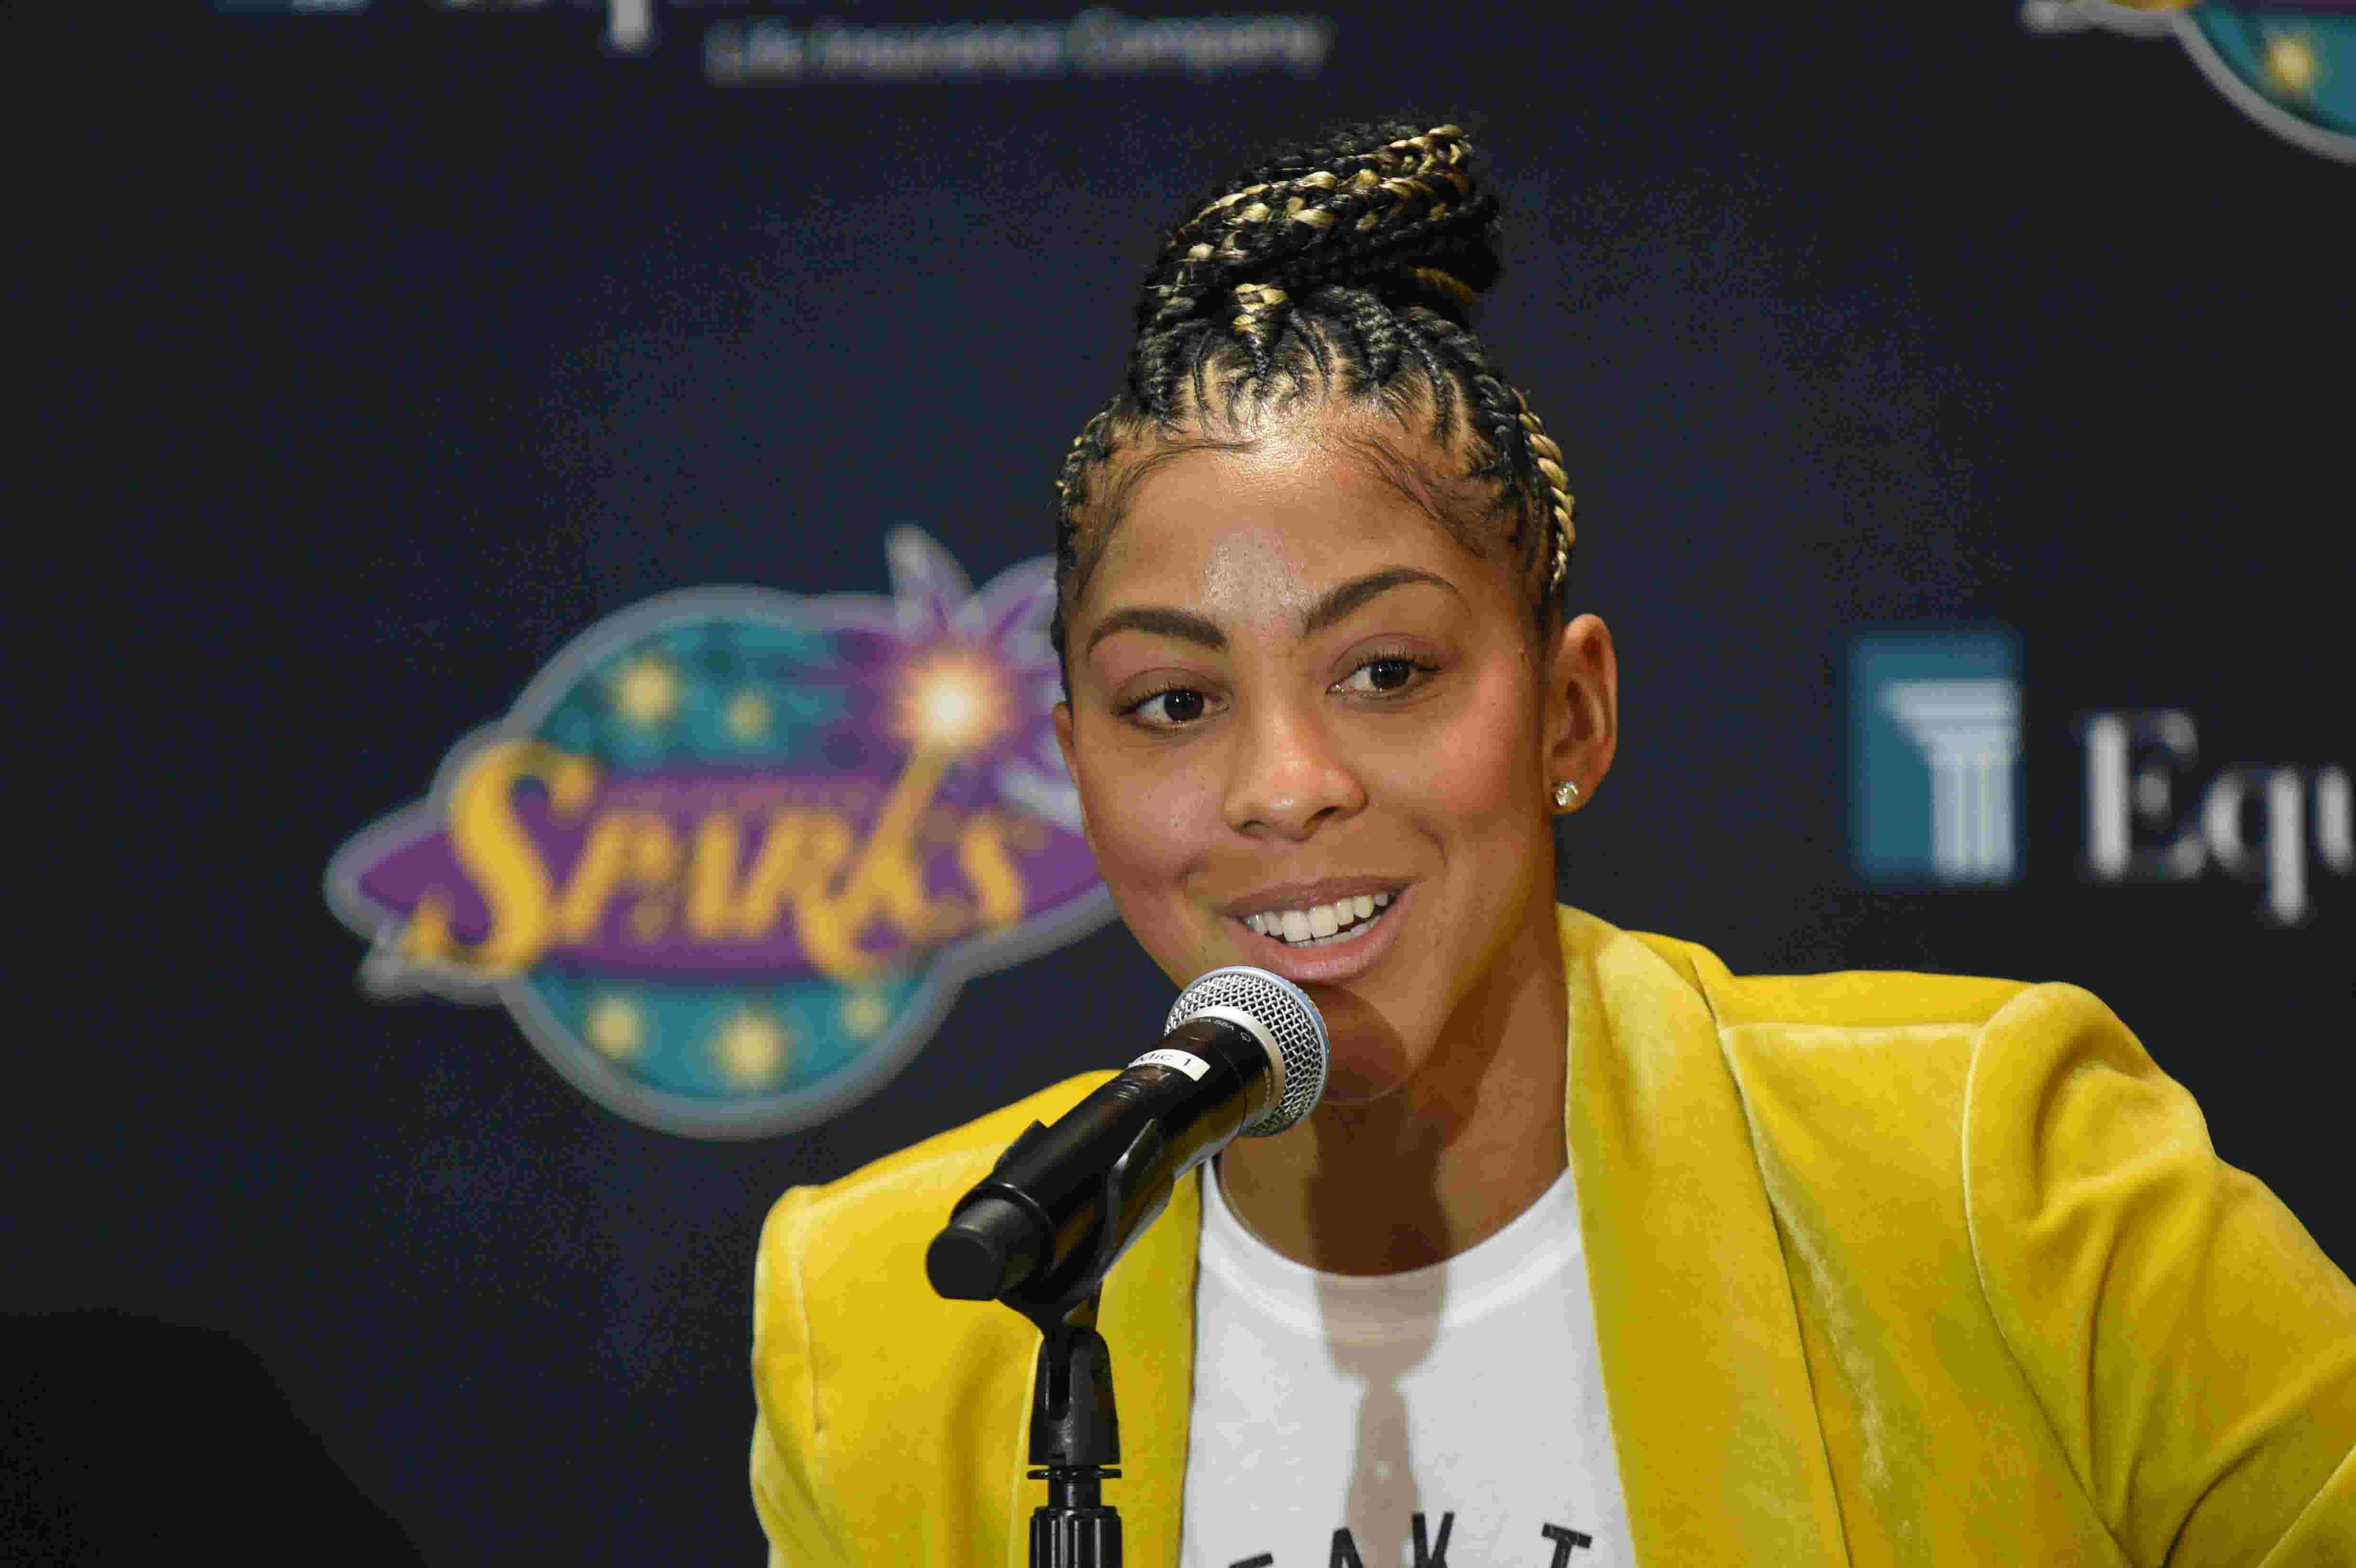 Candace Parker to Atlanta's Kelly Loeffler: 'BLM is not a political statement, it's a moral stance'